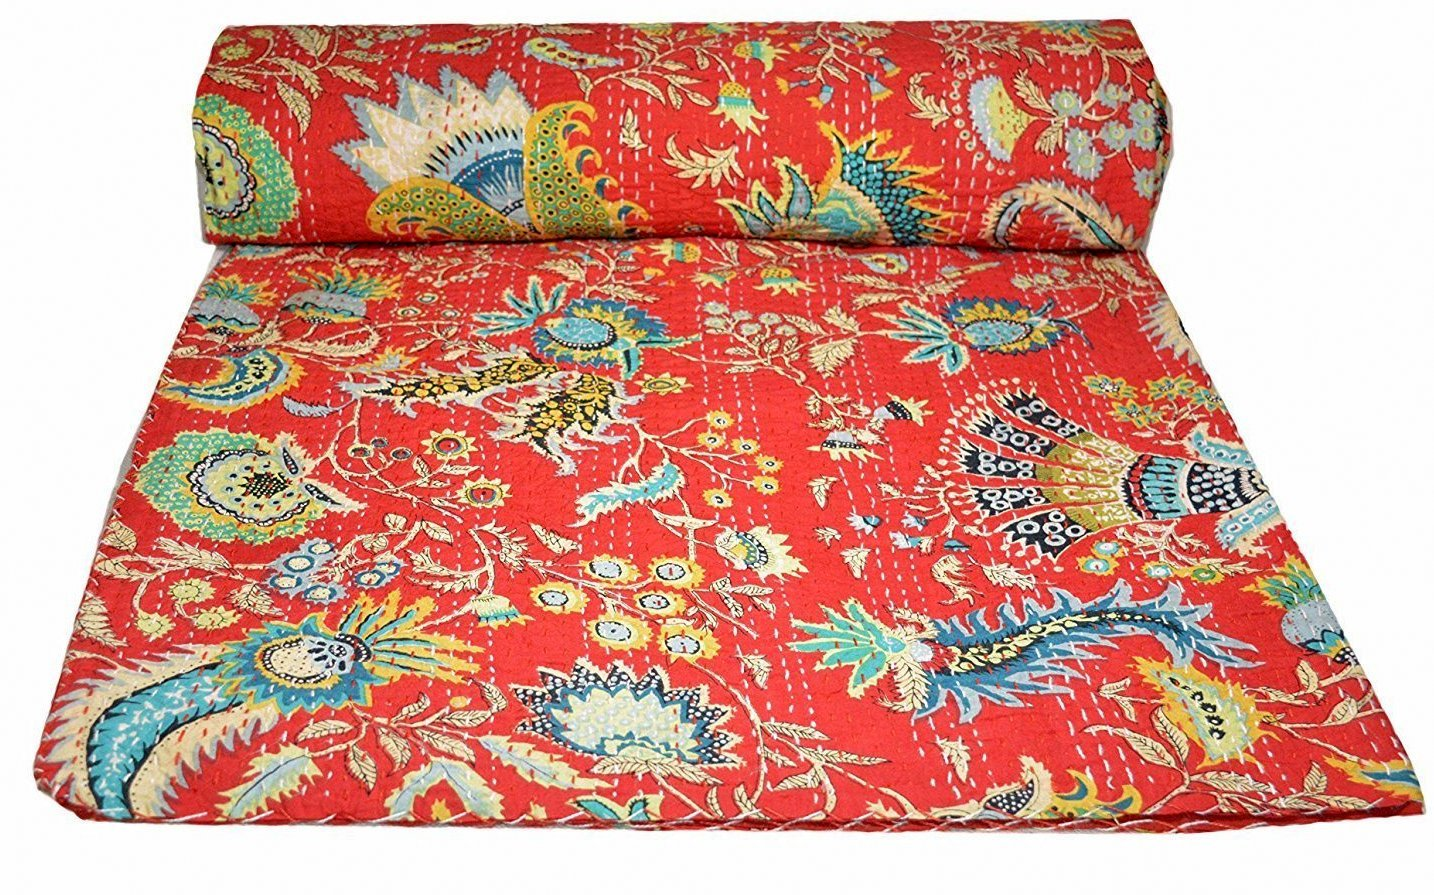 Kiara Indian Handmade Cotton Quilts Reversible Kantha Paisley Pattern Floral Print Bedspreads /& Coverlets Stitch Throw Twin Size//Queen Size Navy Blue, Twin